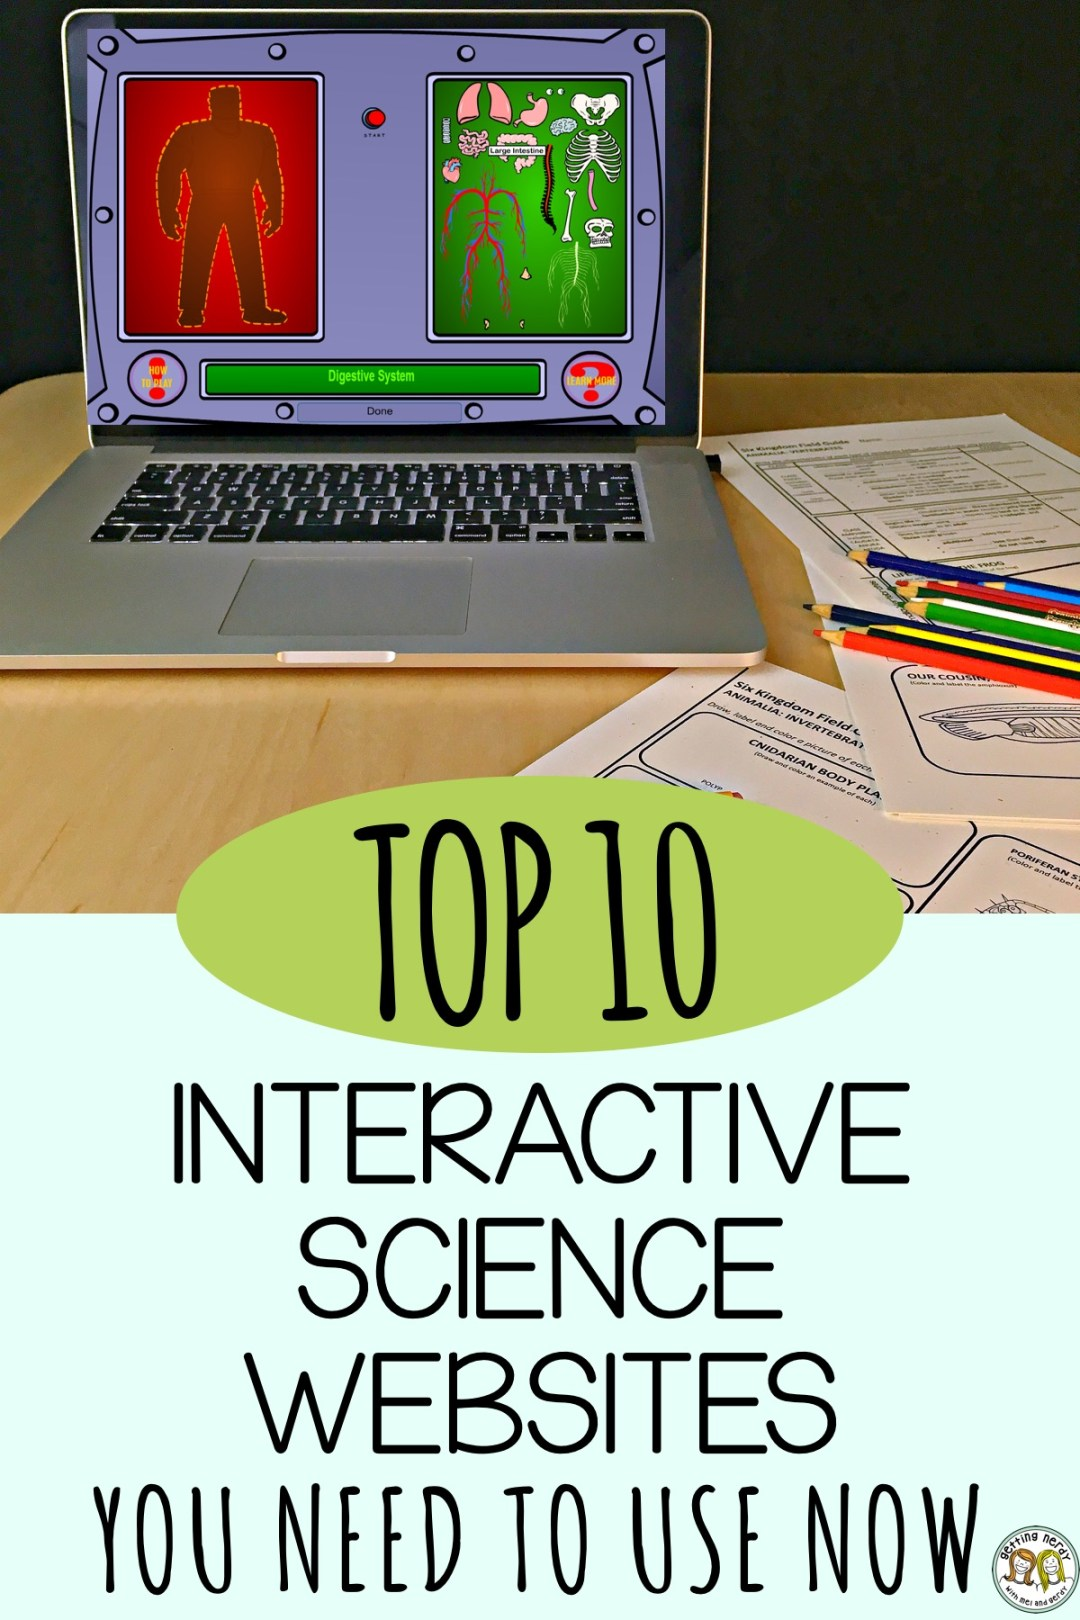 If you\'re looking for something fun to do while teaching science, here\'s our top ten list of interactive websites for scientific learning #gettingnerdyscience #interactivelearning #topsciencesites